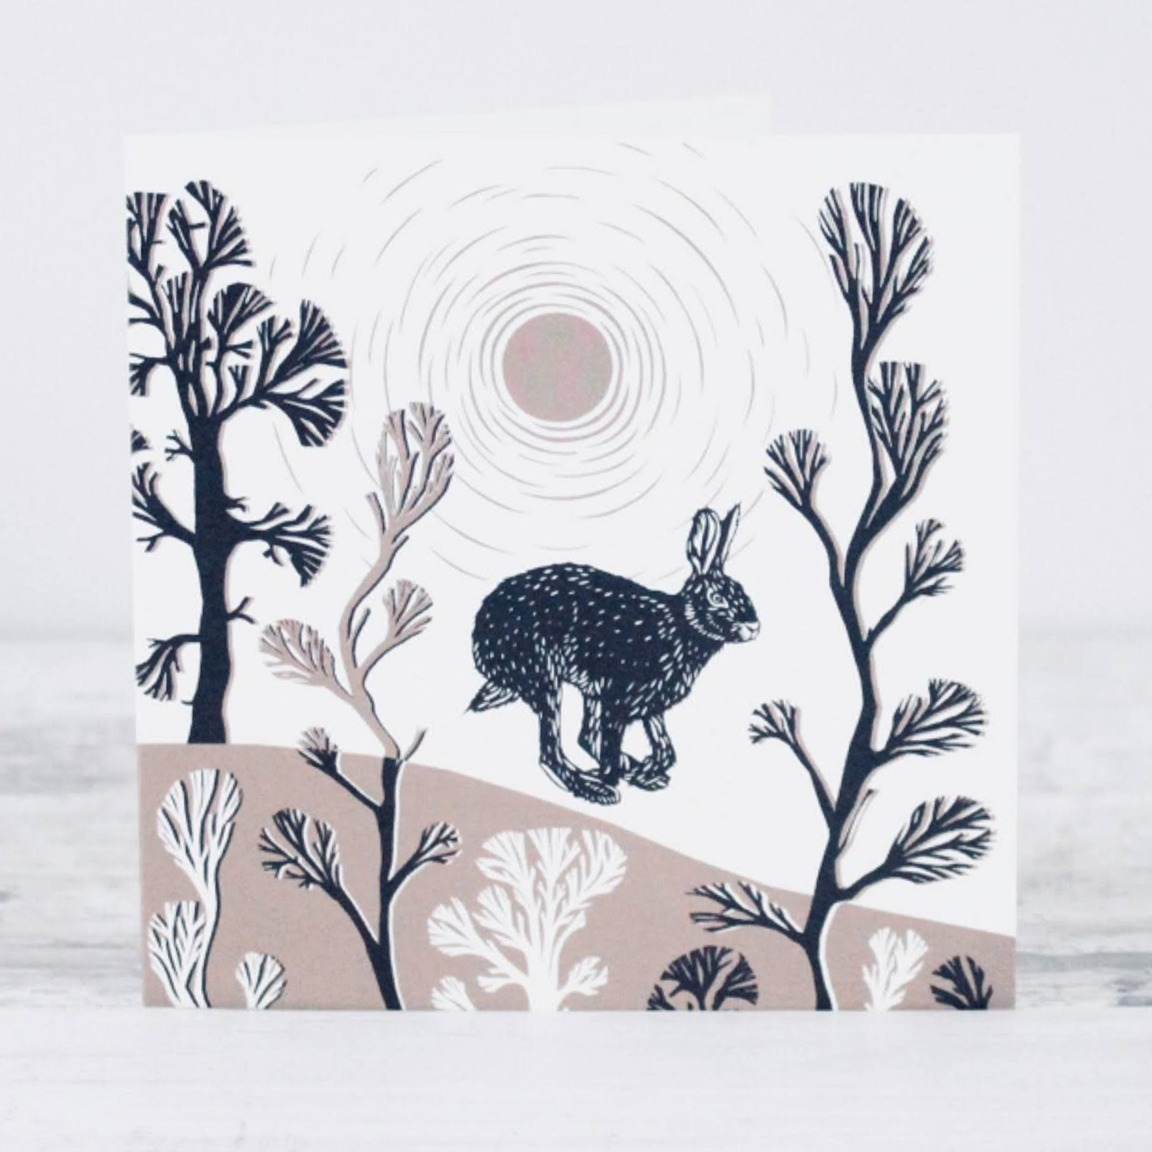 Leaping Hare Card by Folded Forest